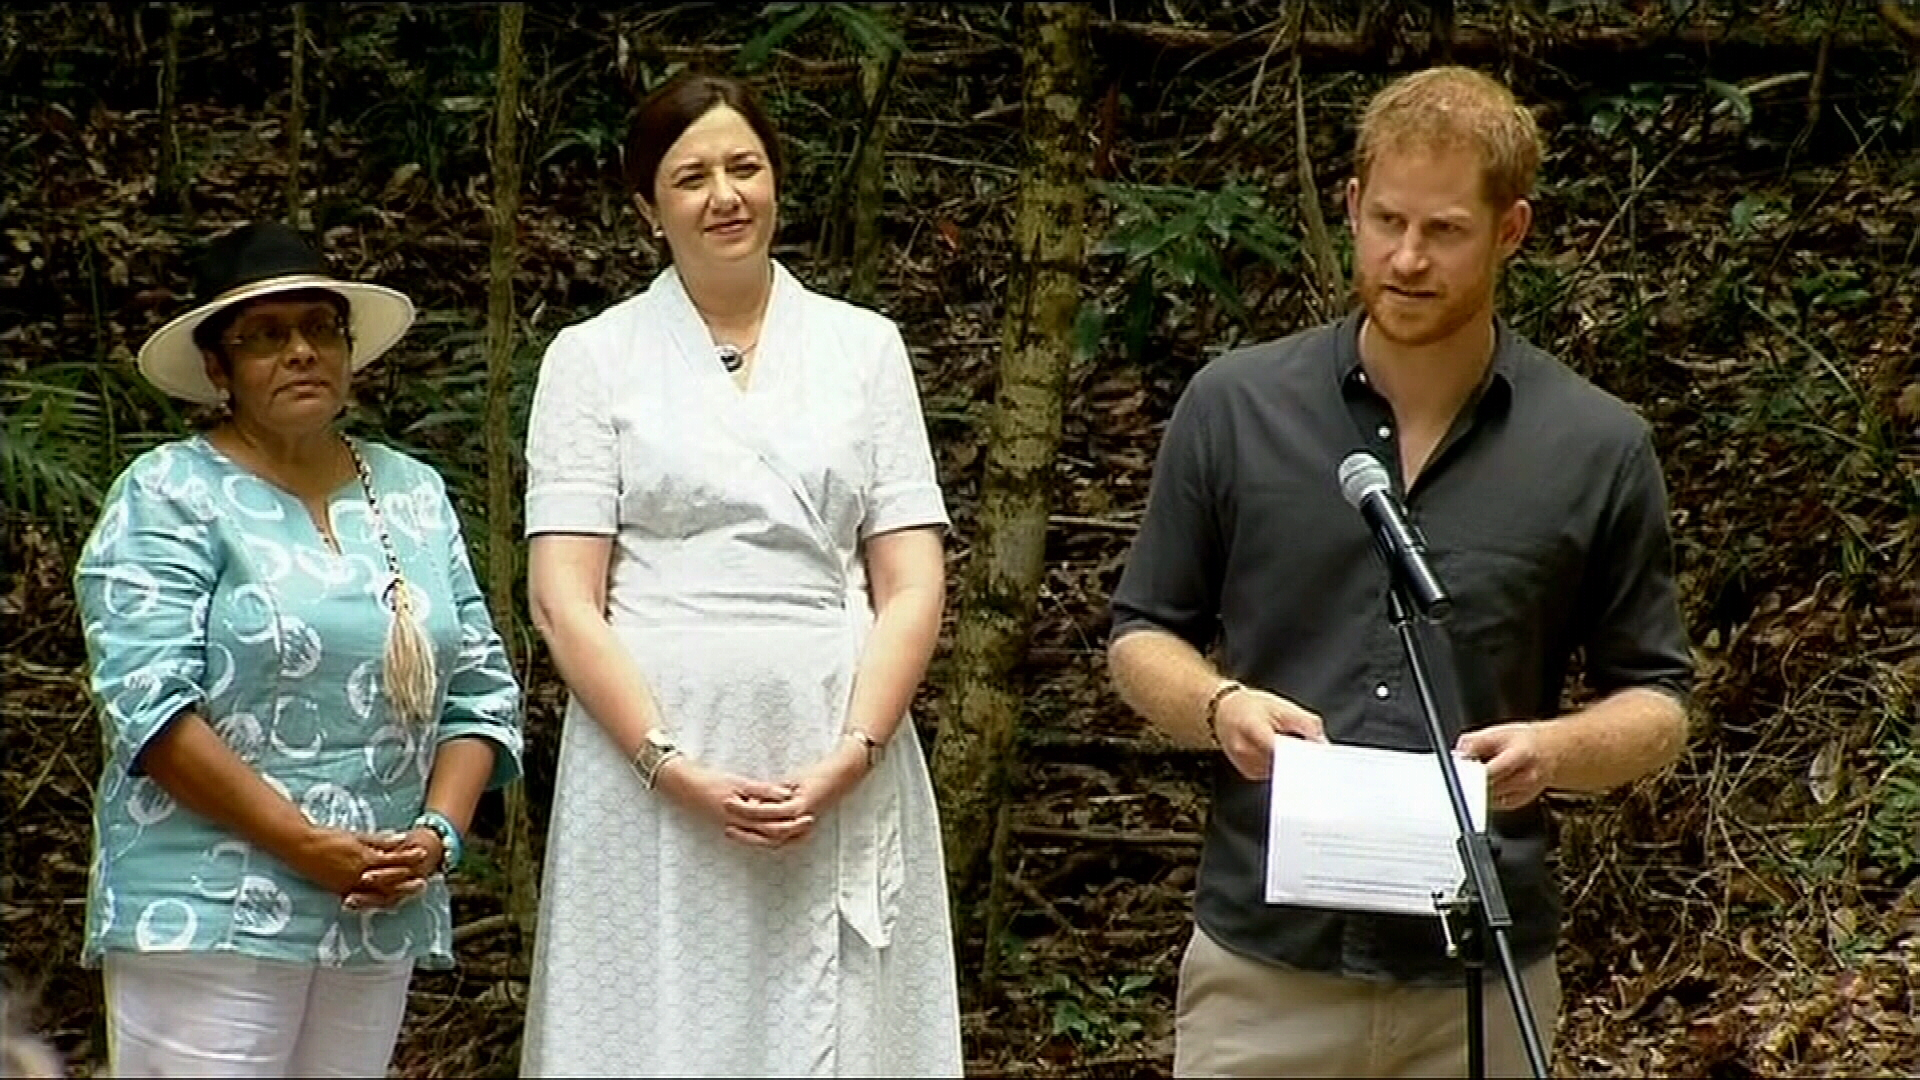 Prince Harry's speech at Pile Valley